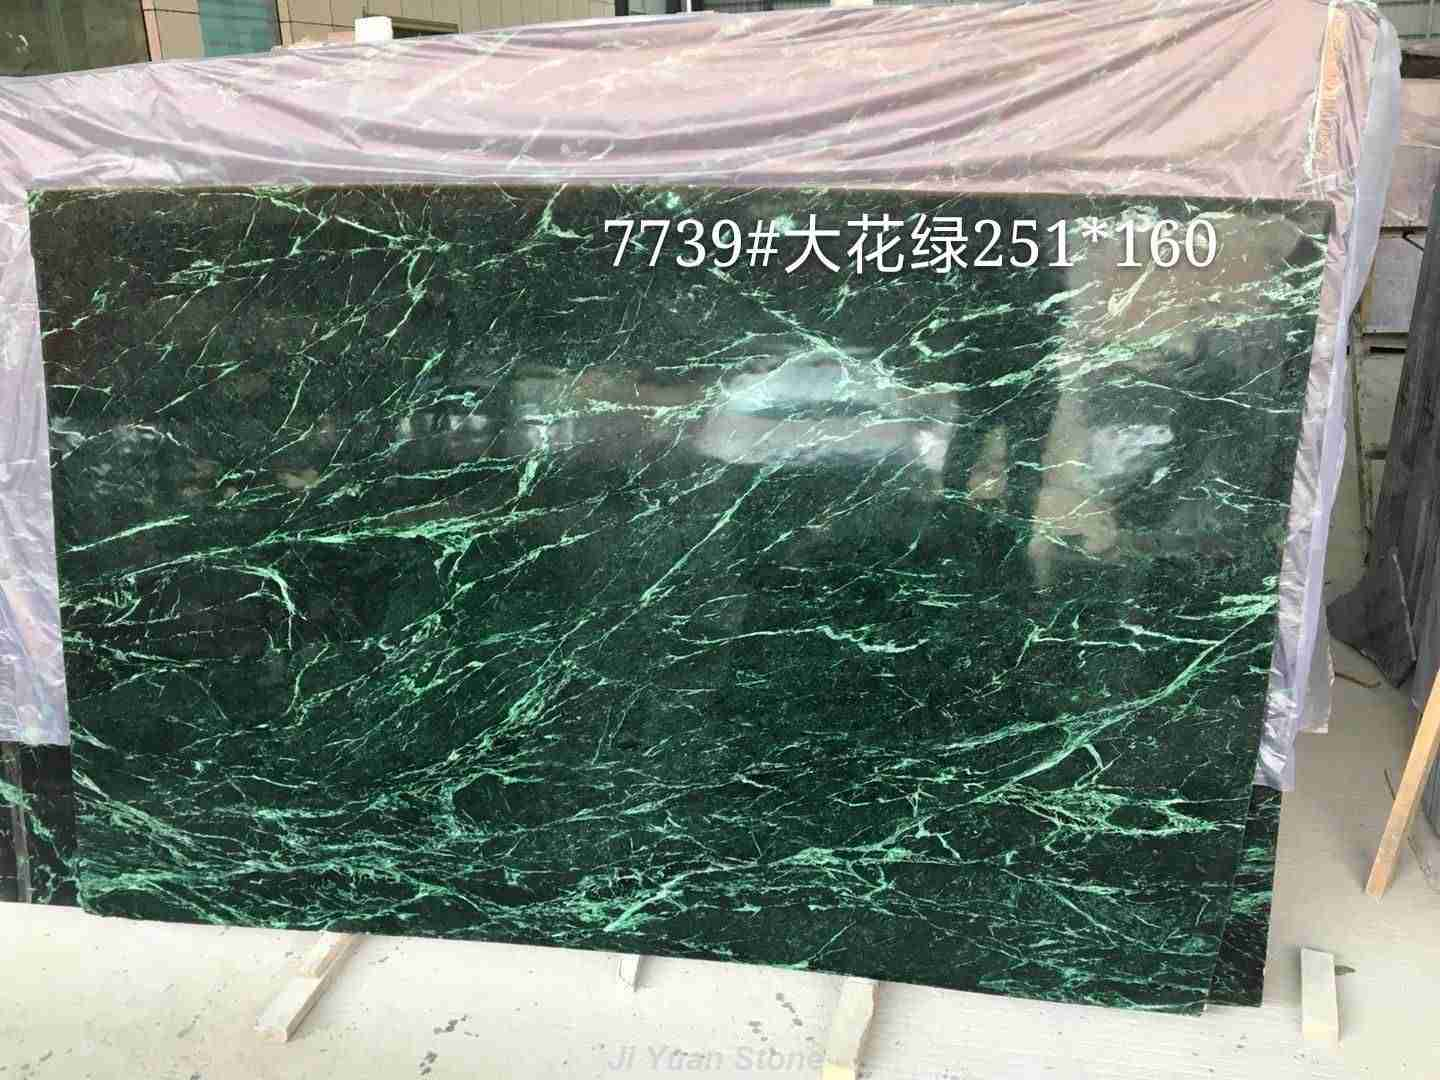 ming green marble,ppi green marble setting spray,green marble makeup spray,green marble makeup sealer,green marble tile bathroom,green marble makeup setting spray